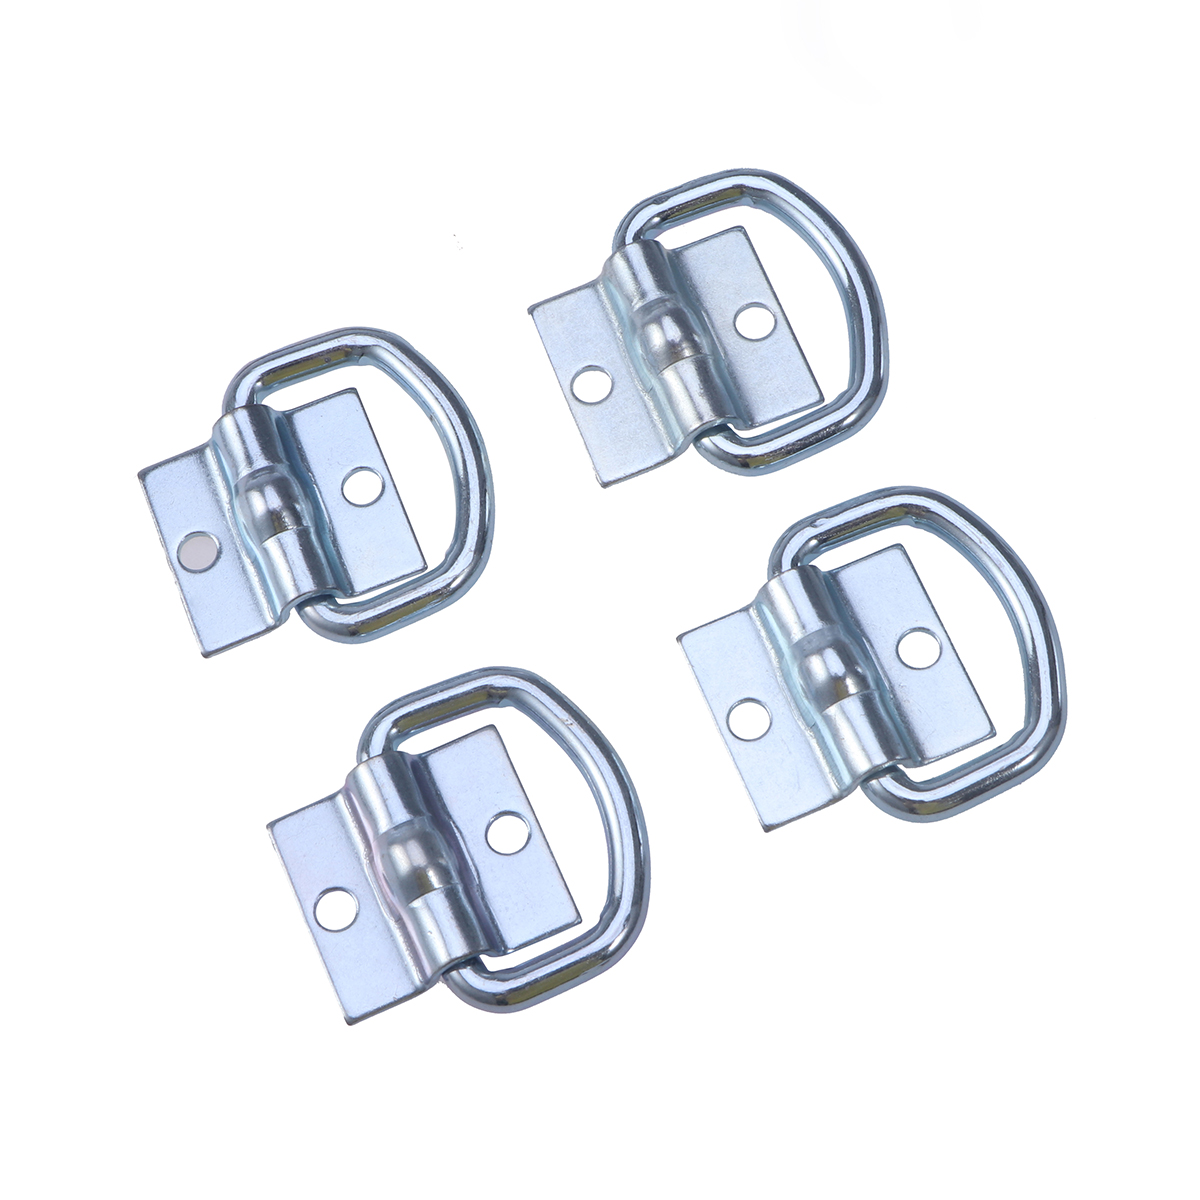 Durable 4pcs Tie Down D Ring Load Anchor Trailer Anchor Forged Lashing Ring With 9600 Pound Capacity Car Trailer Accessories